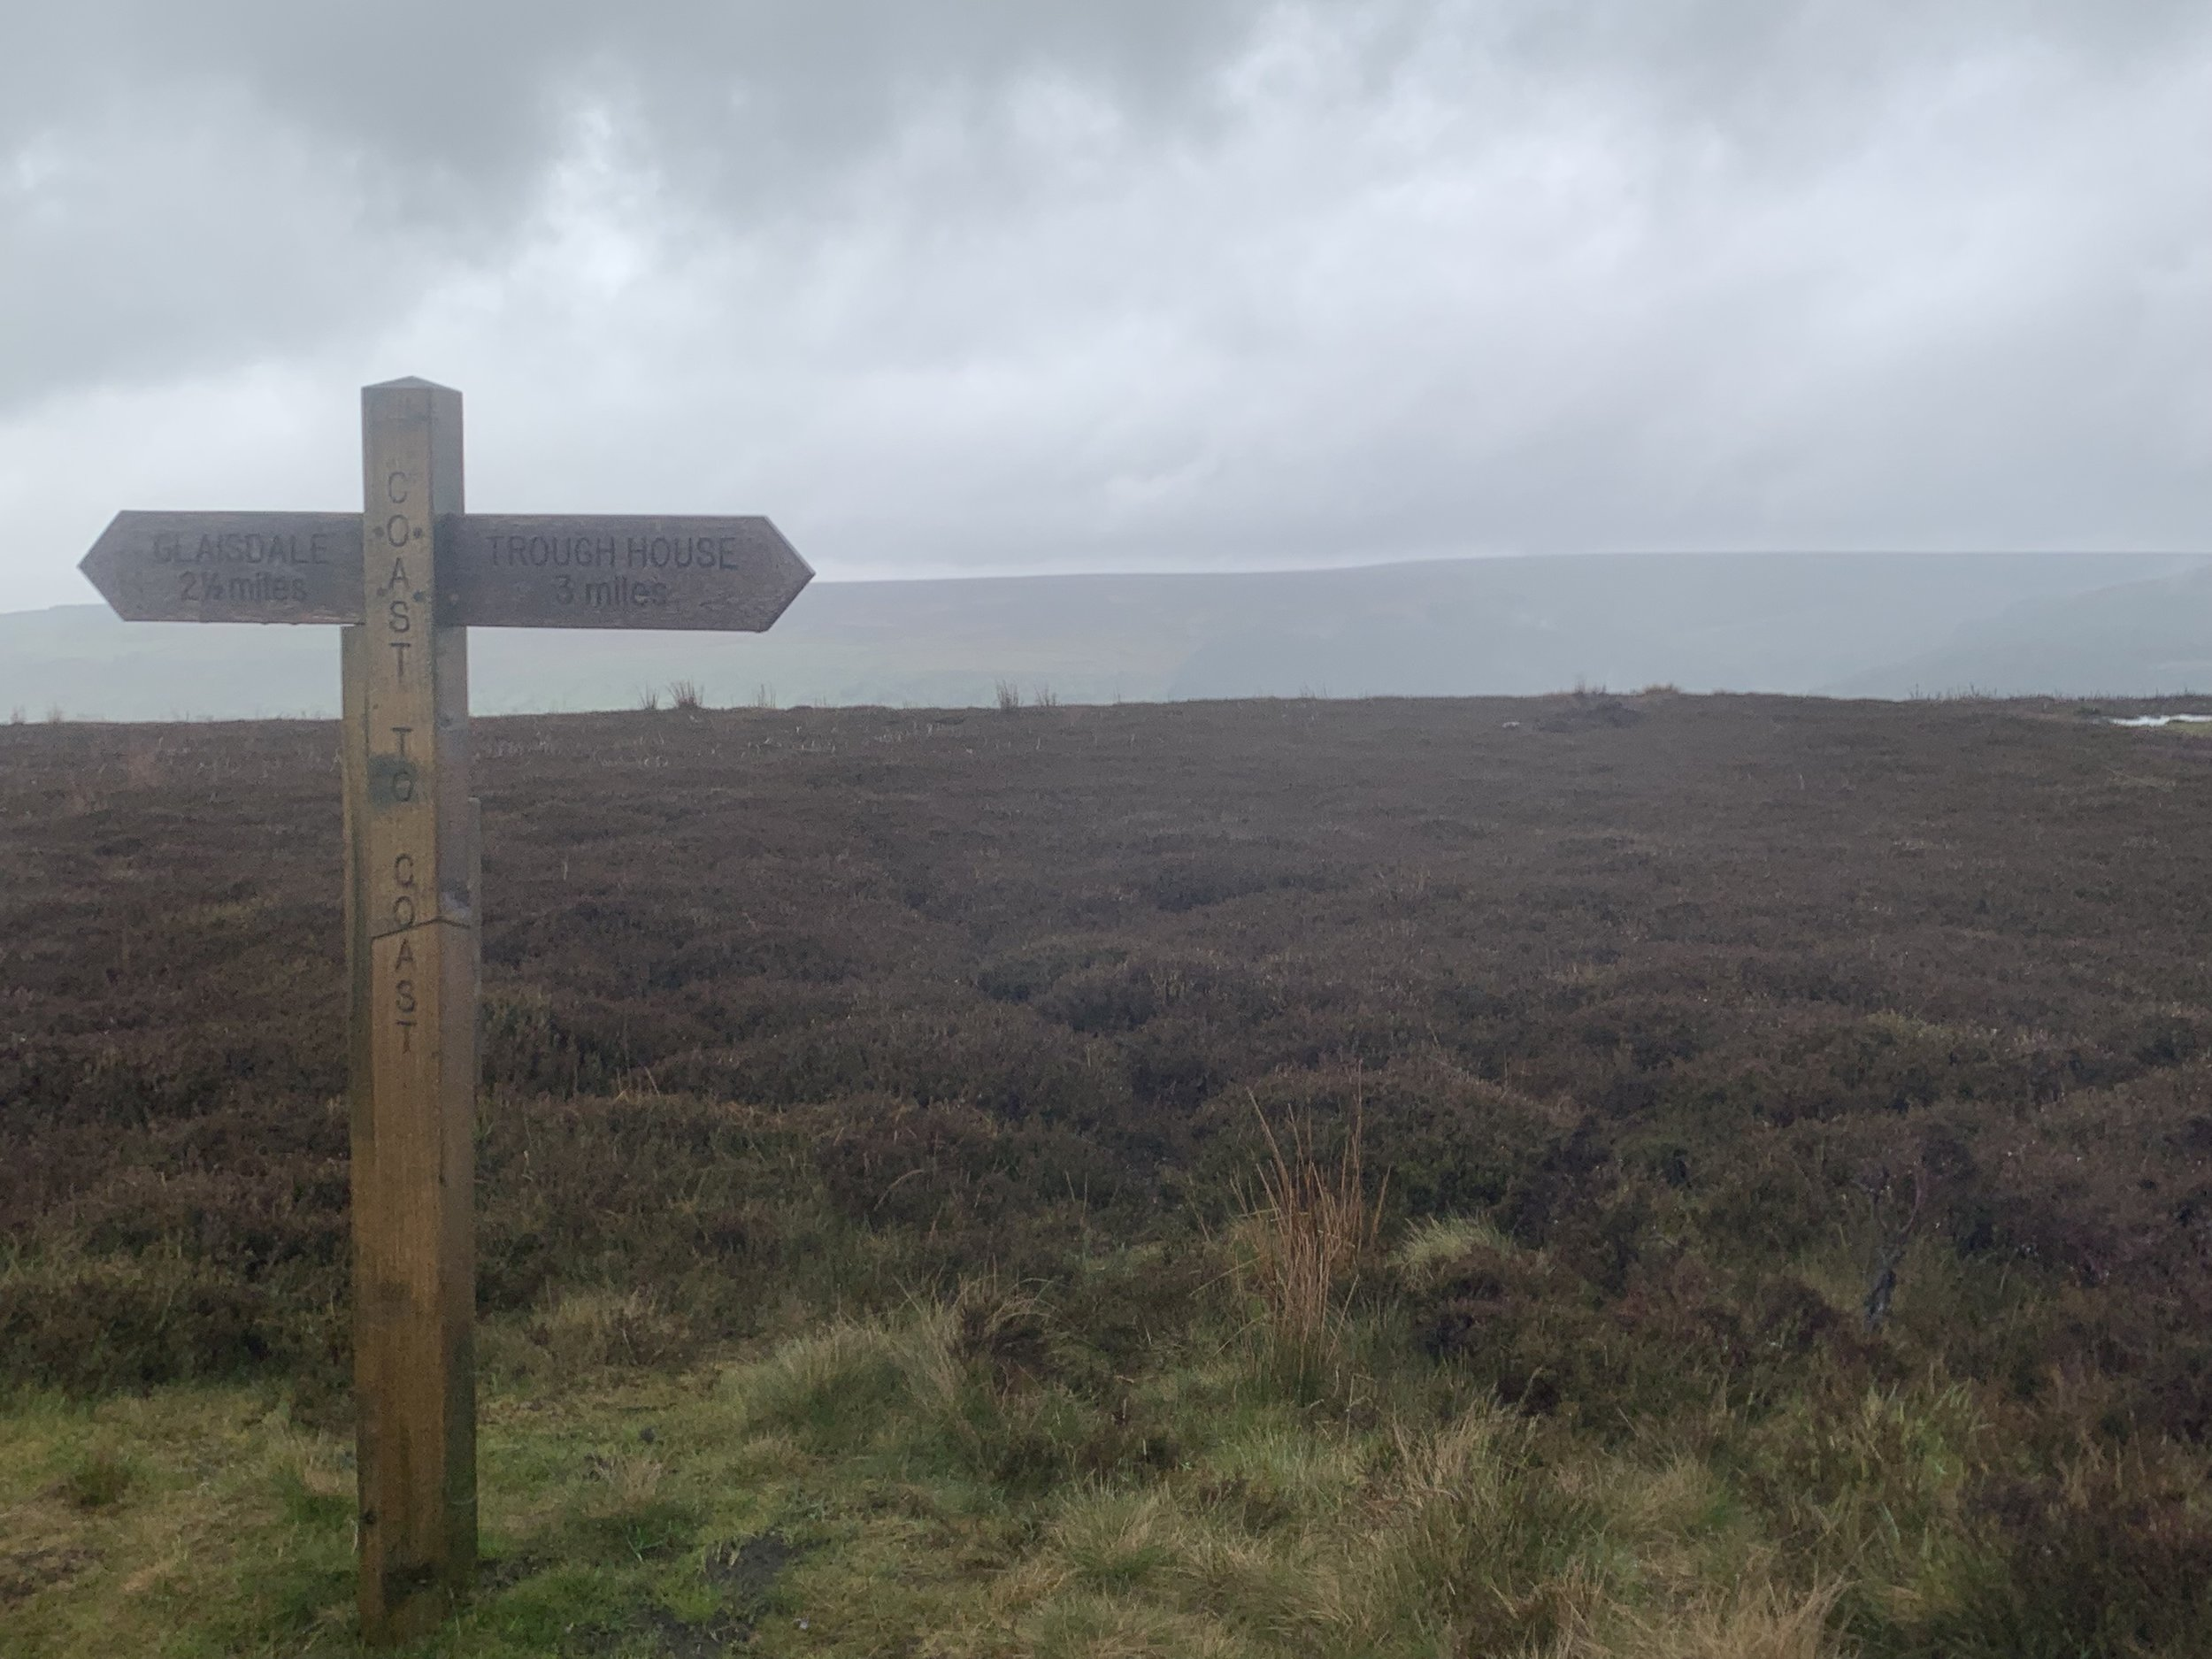 Rainy and windy Yorkshire Moors. photo by anne richardson